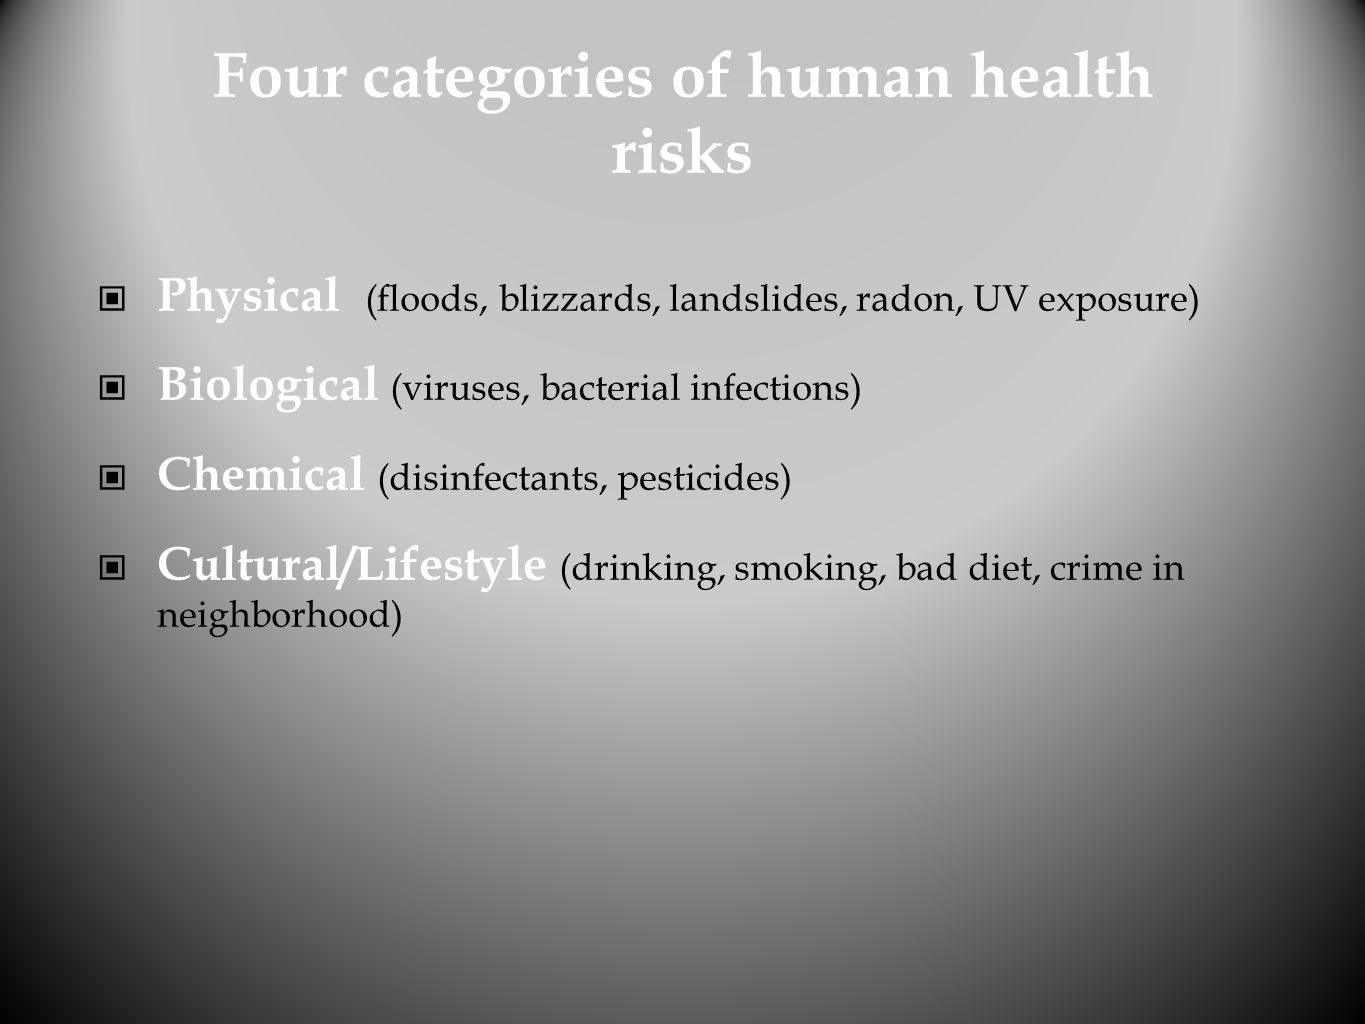 Four categories of human health risks